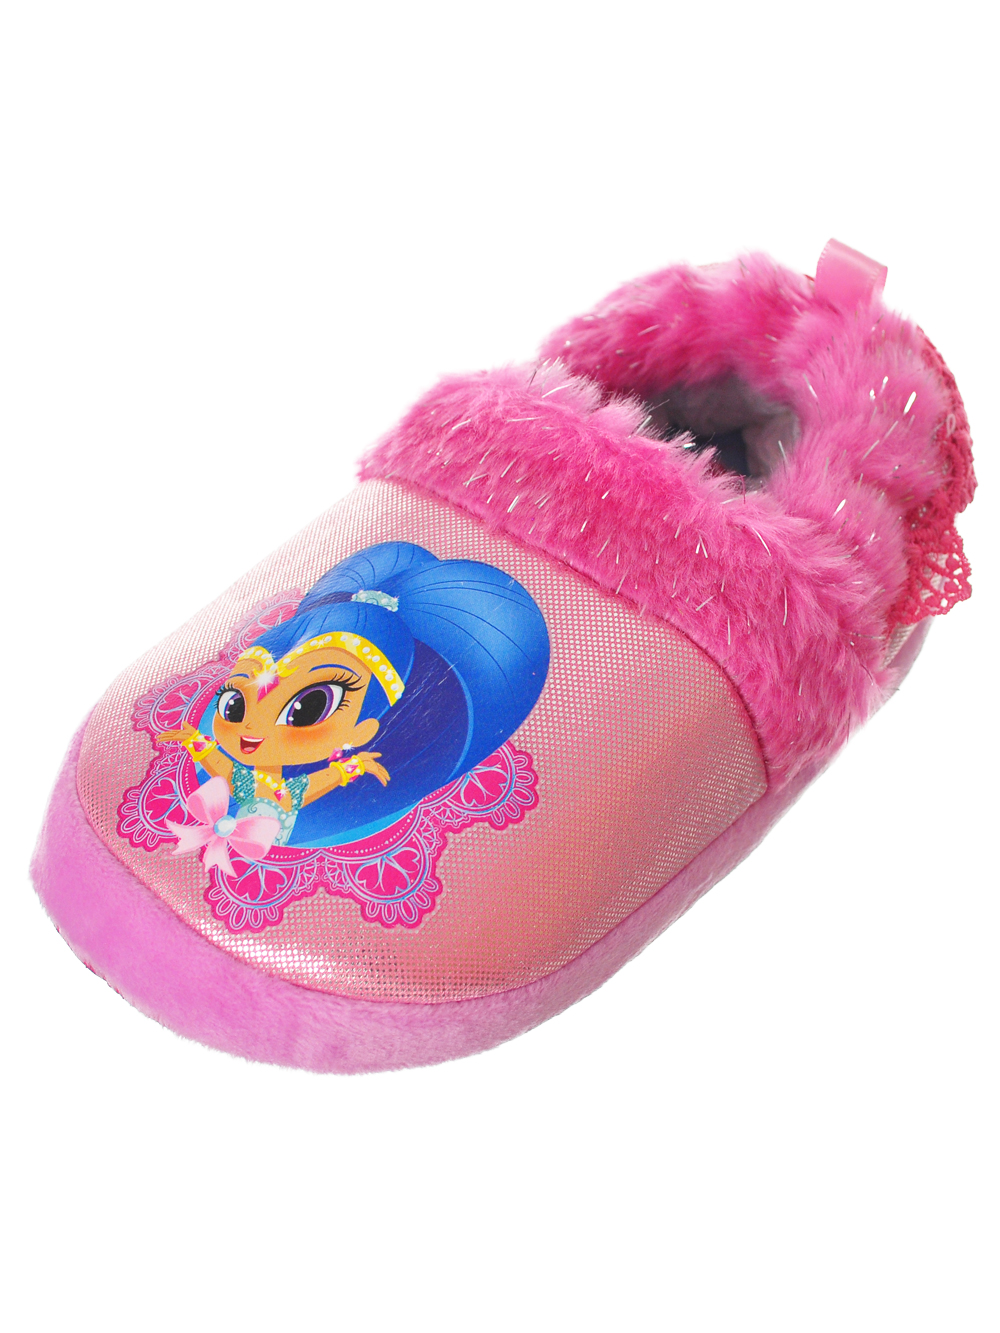 Shimmer and Shine Girls' Slippers (Sizes 7 - 12)